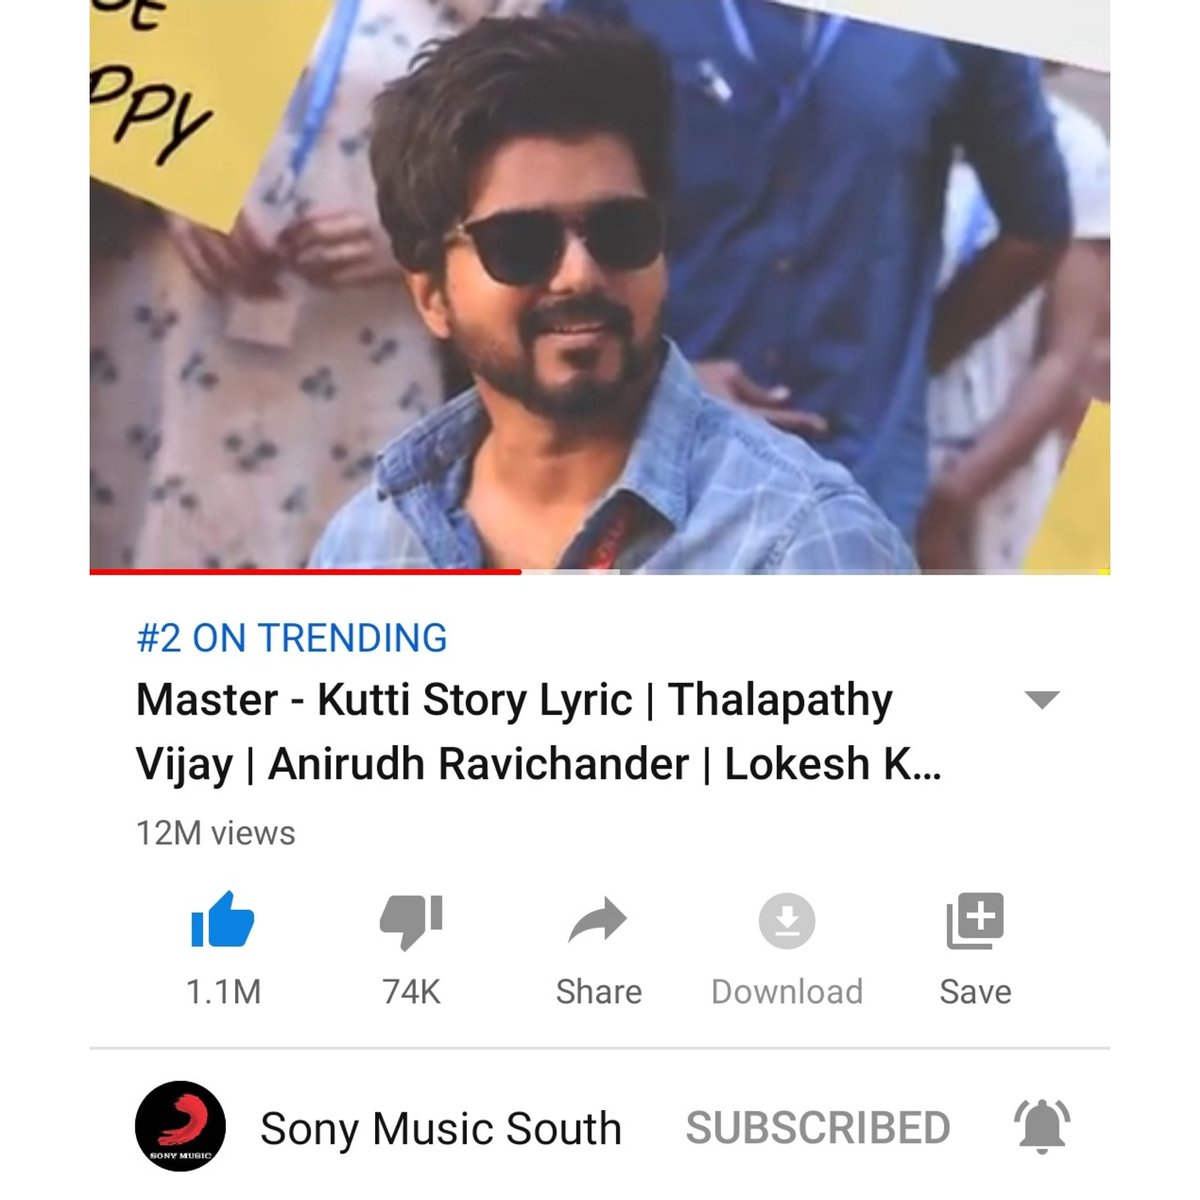 Nambe #Thalapathy 's #KuttyStory is the number 2️⃣ trending video on YouTube with 12 million views! THAT'S CRAZY! 😵😍🔥 That way my kutty story, how my kutty story? @actorvijay @VijaySethuOffl @anirudhofficial @Dir_Lokesh @SonyMusicSouth @sonymusicindia